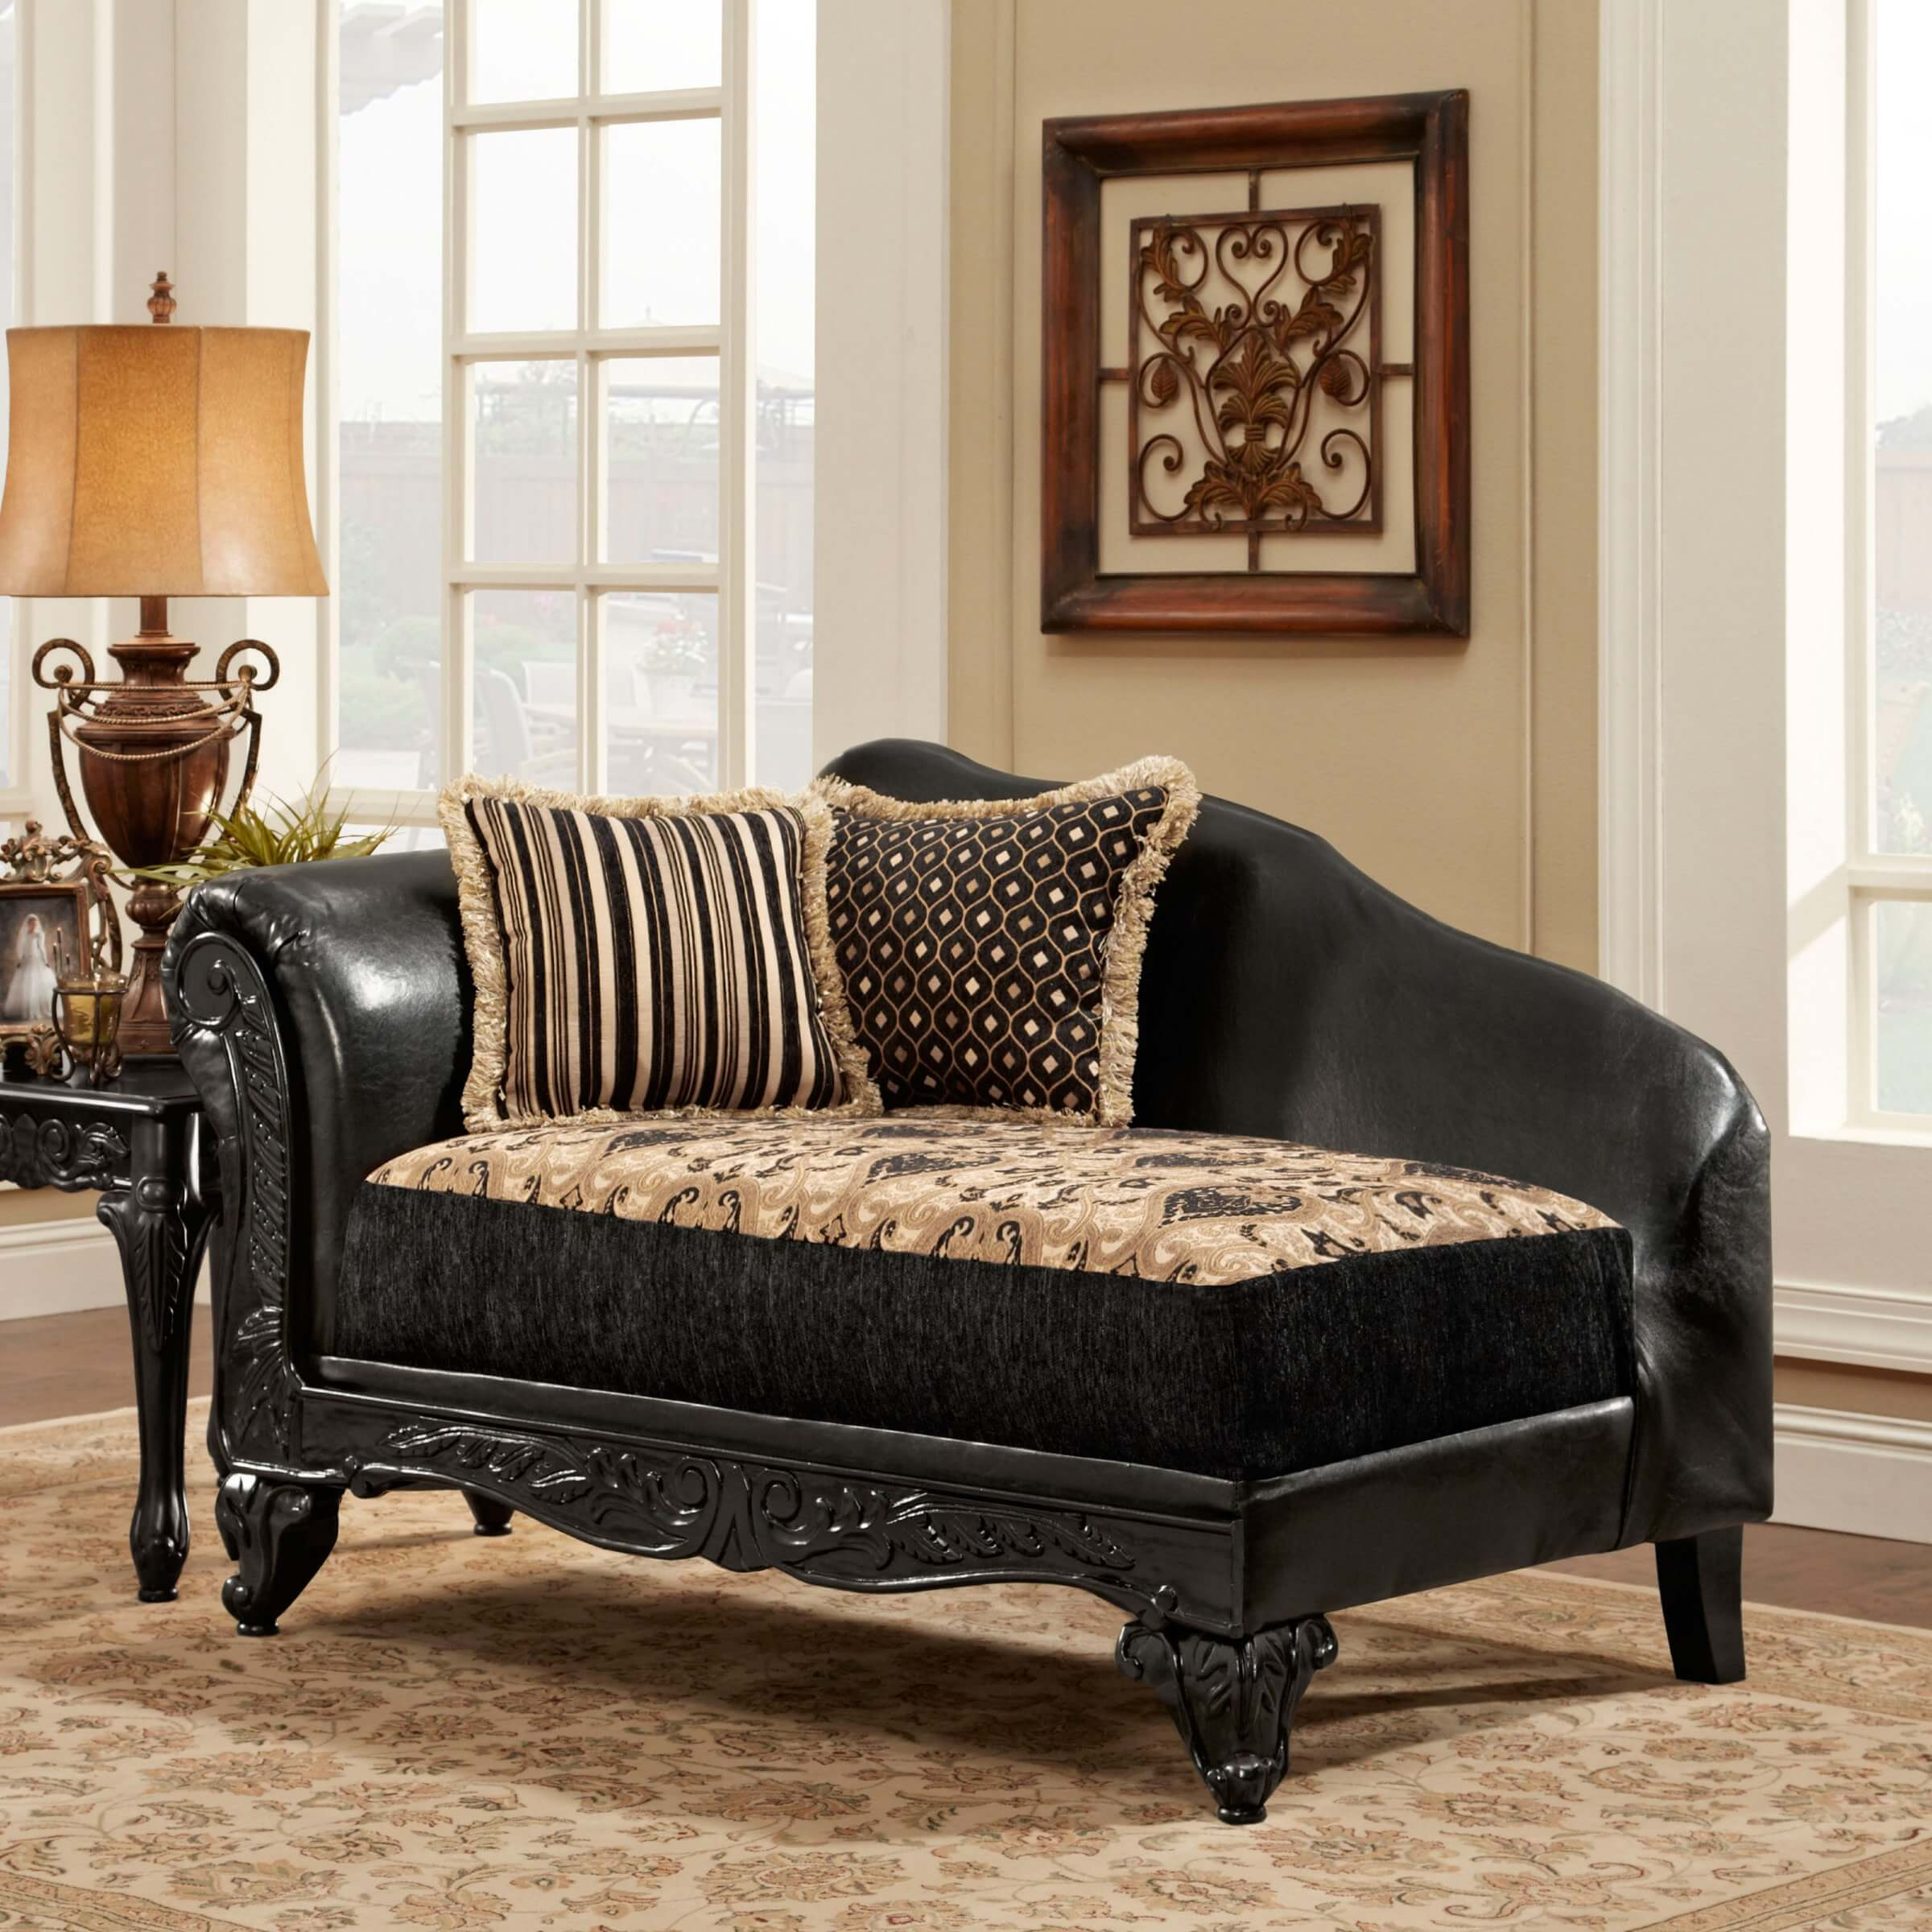 Missoni Home Lounger Chair Jalamar: Top 20 Types Of Black Chaise Lounges (Buying Guide